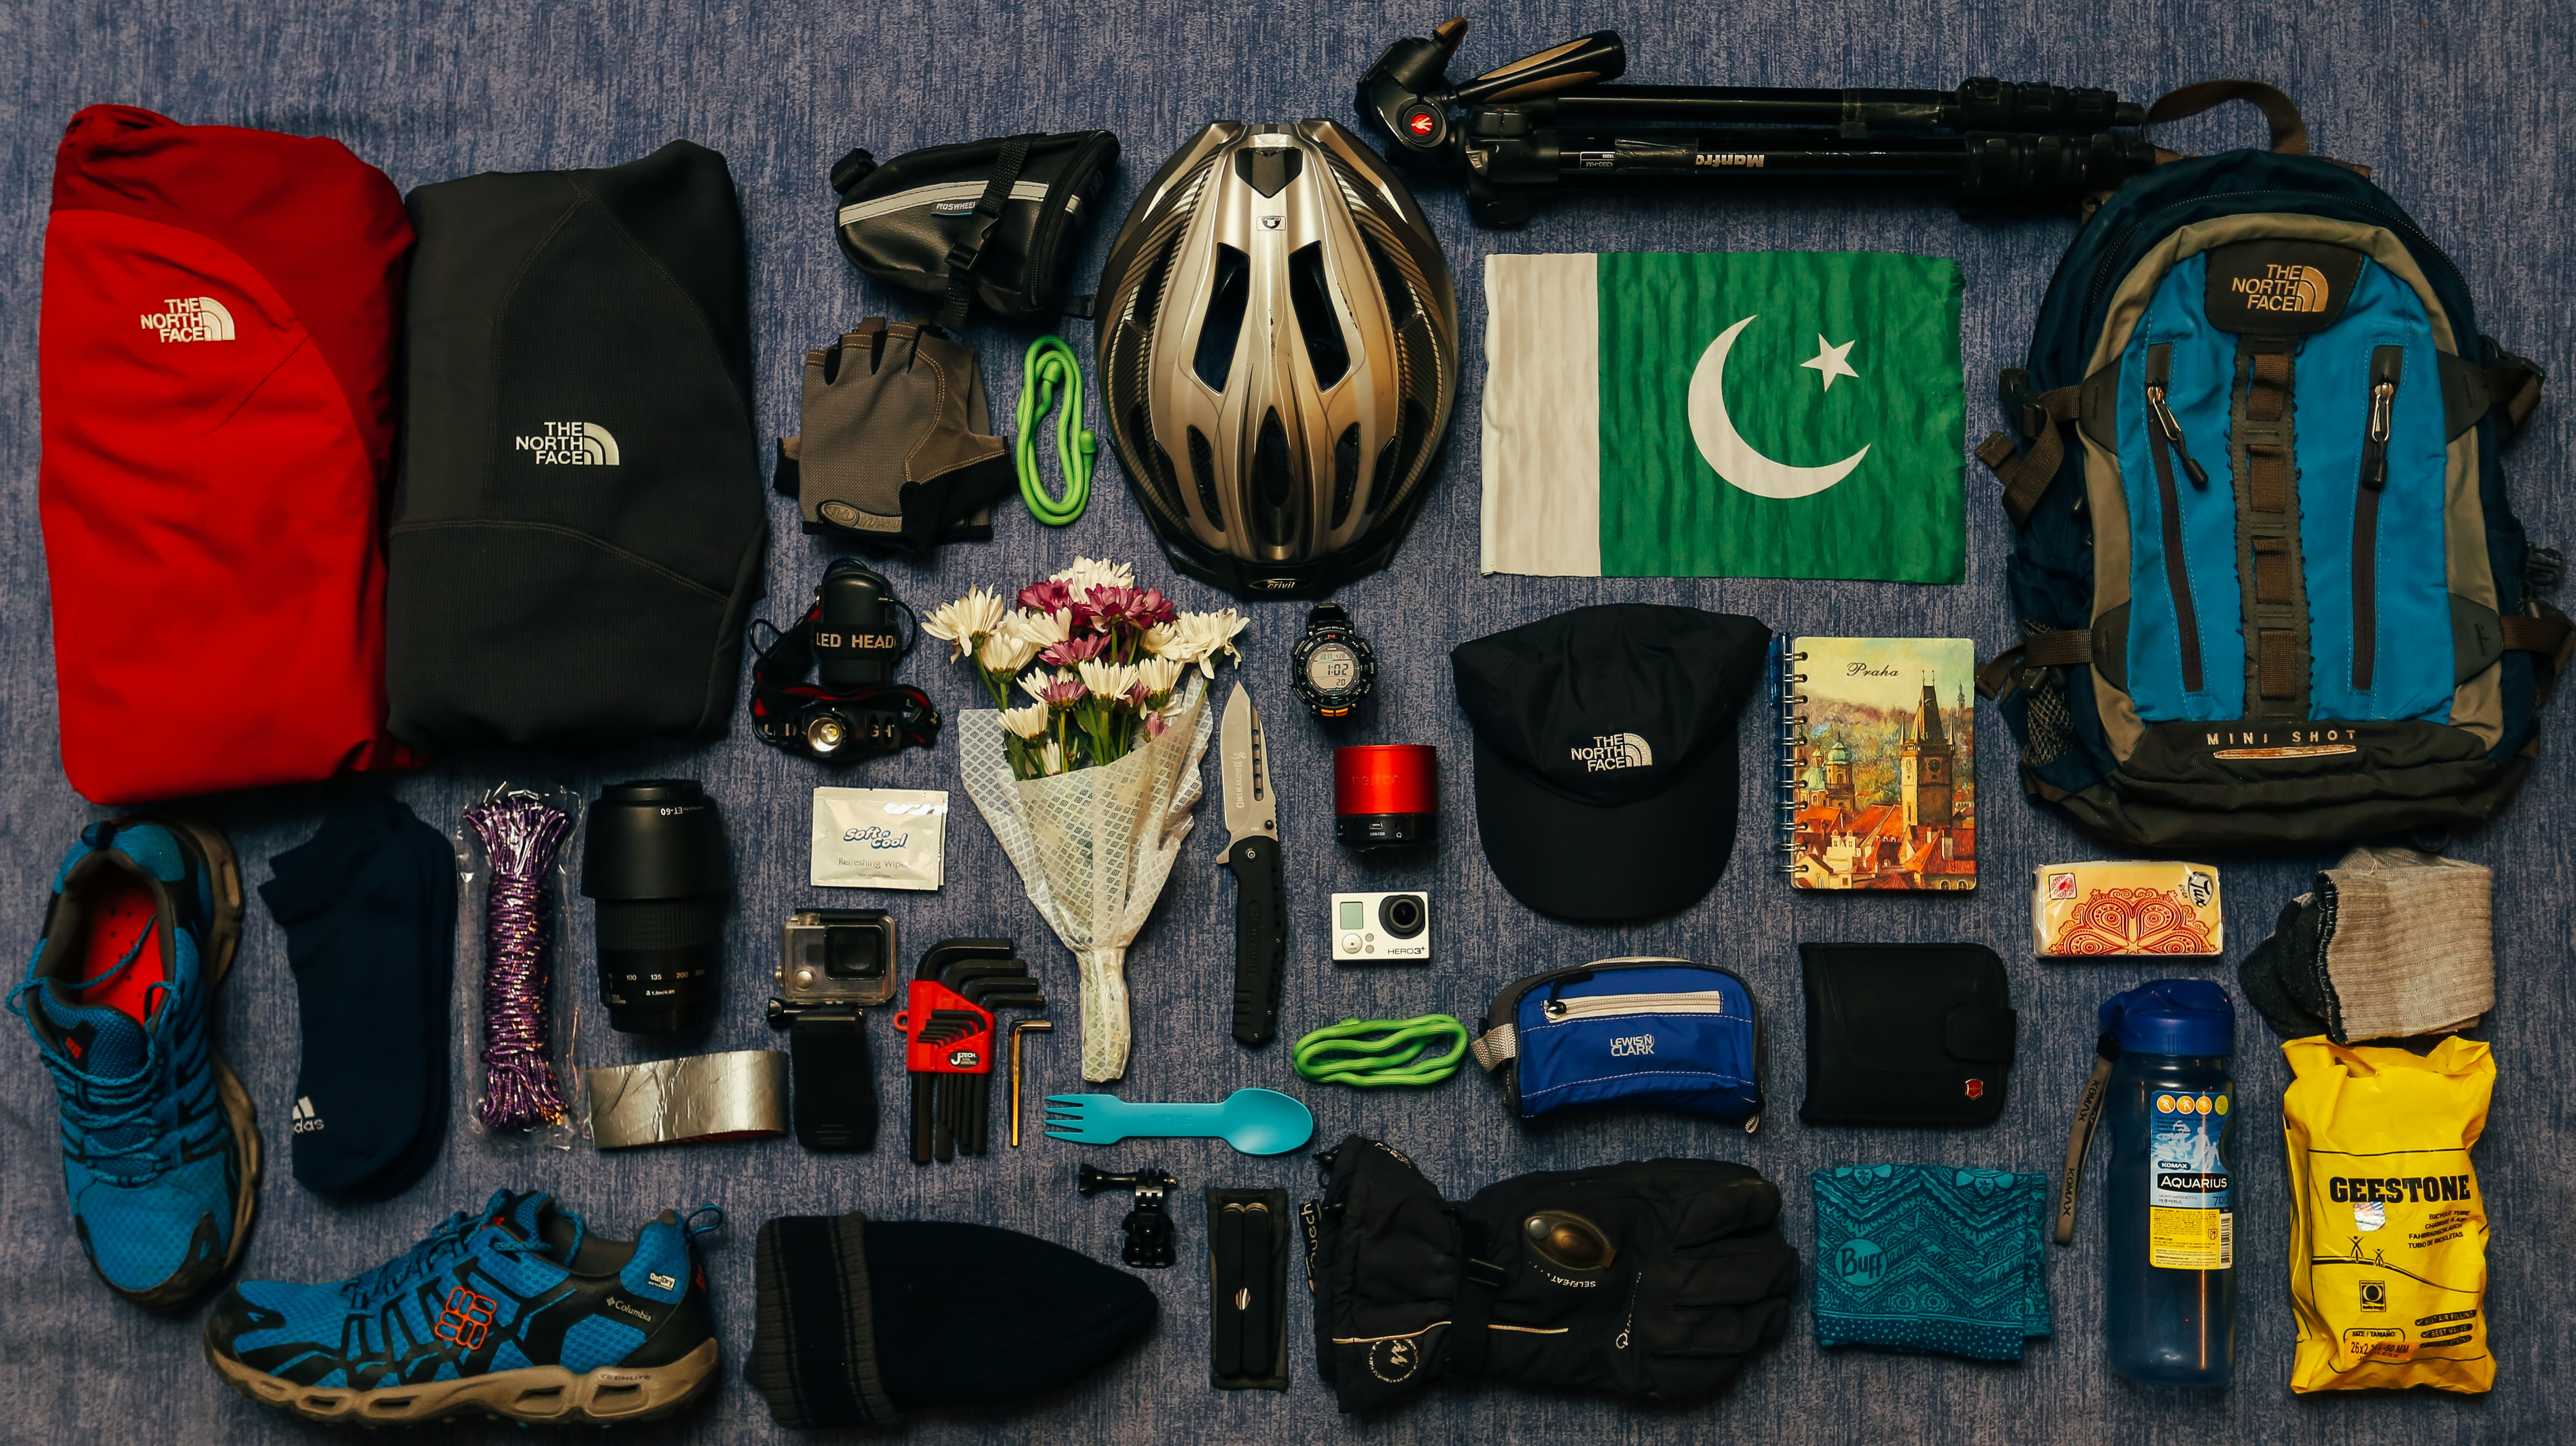 Biking and camping equipment, flowers, and flag sit neatly on blue surface